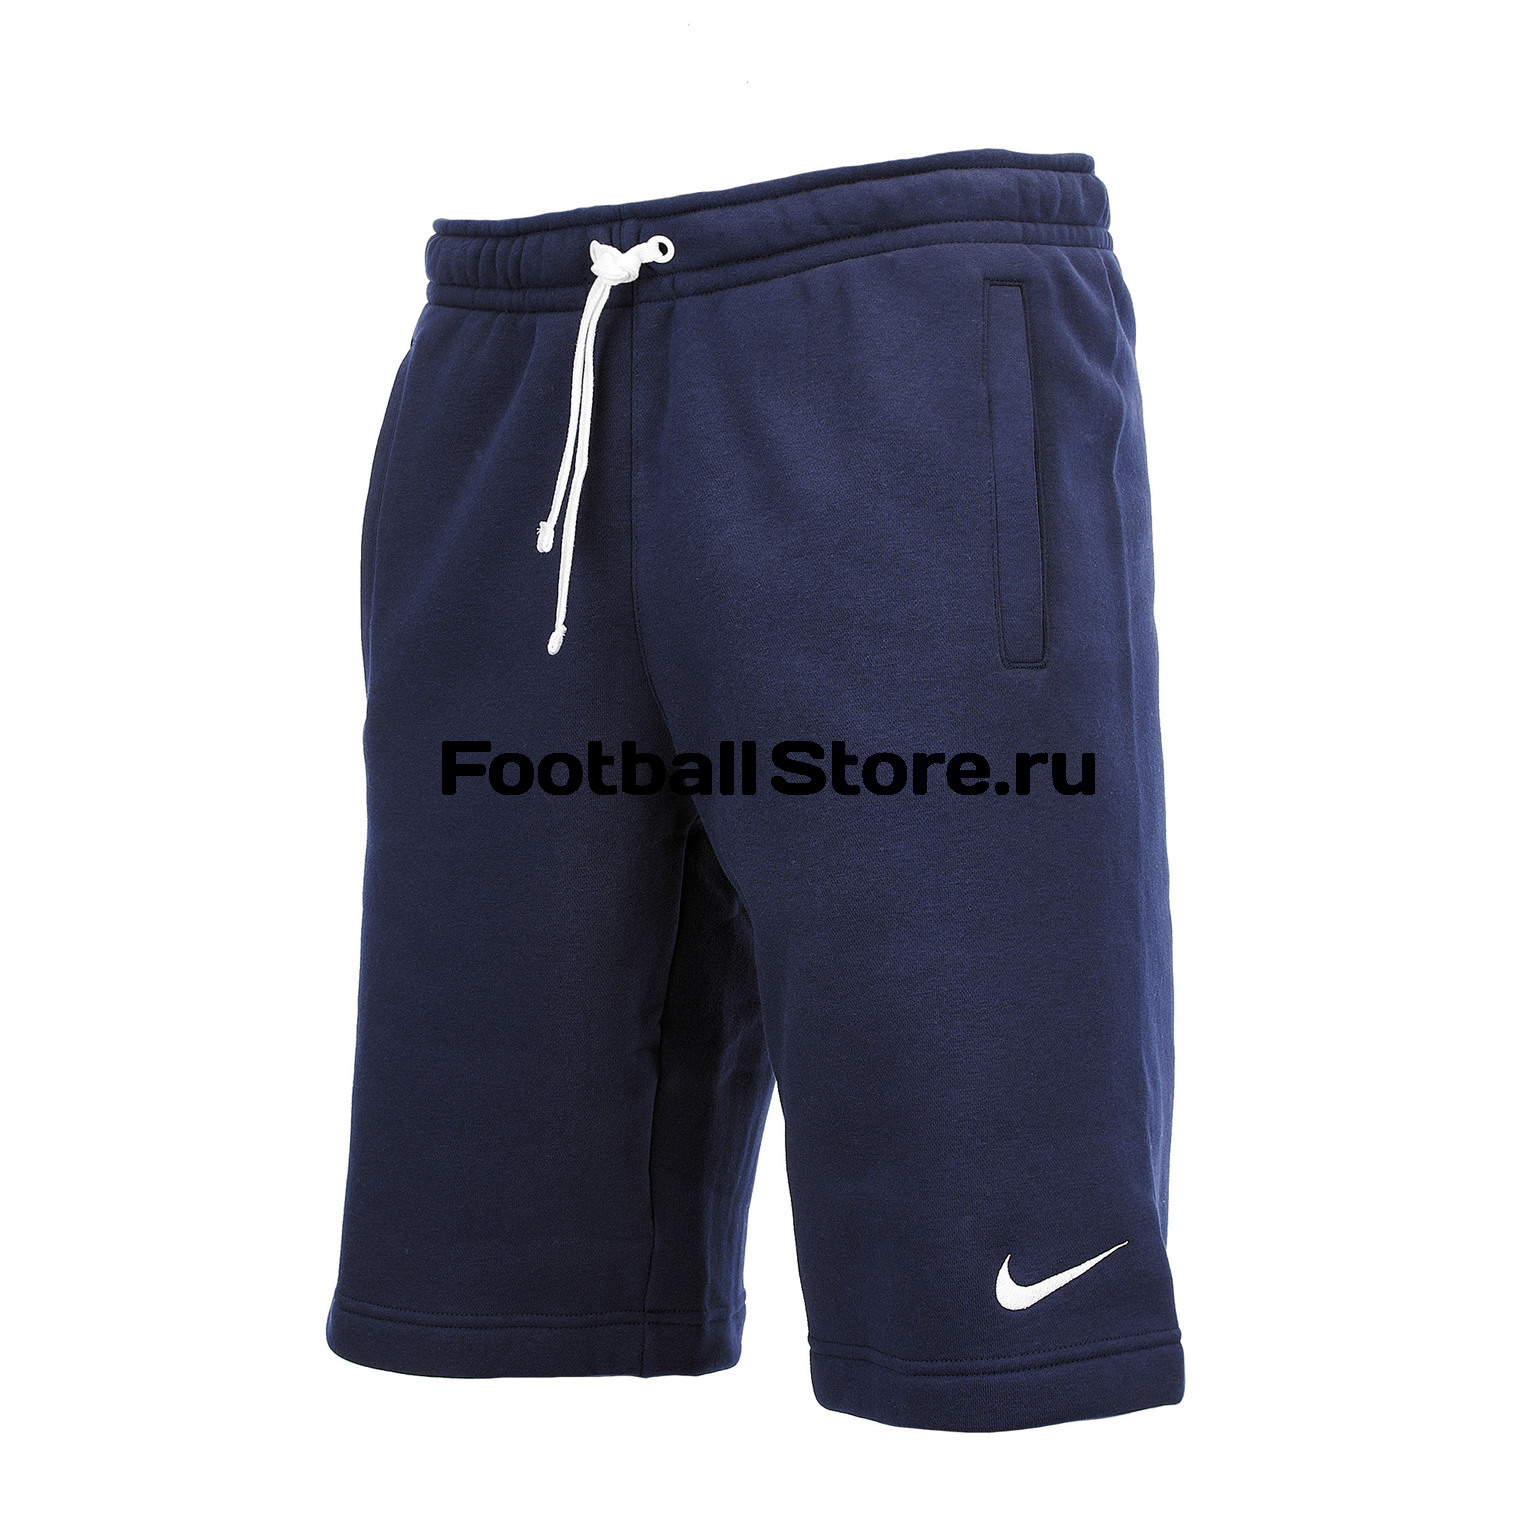 купить Шорты Nike Flc Club19 Short AQ3136-451 в интернет-магазине